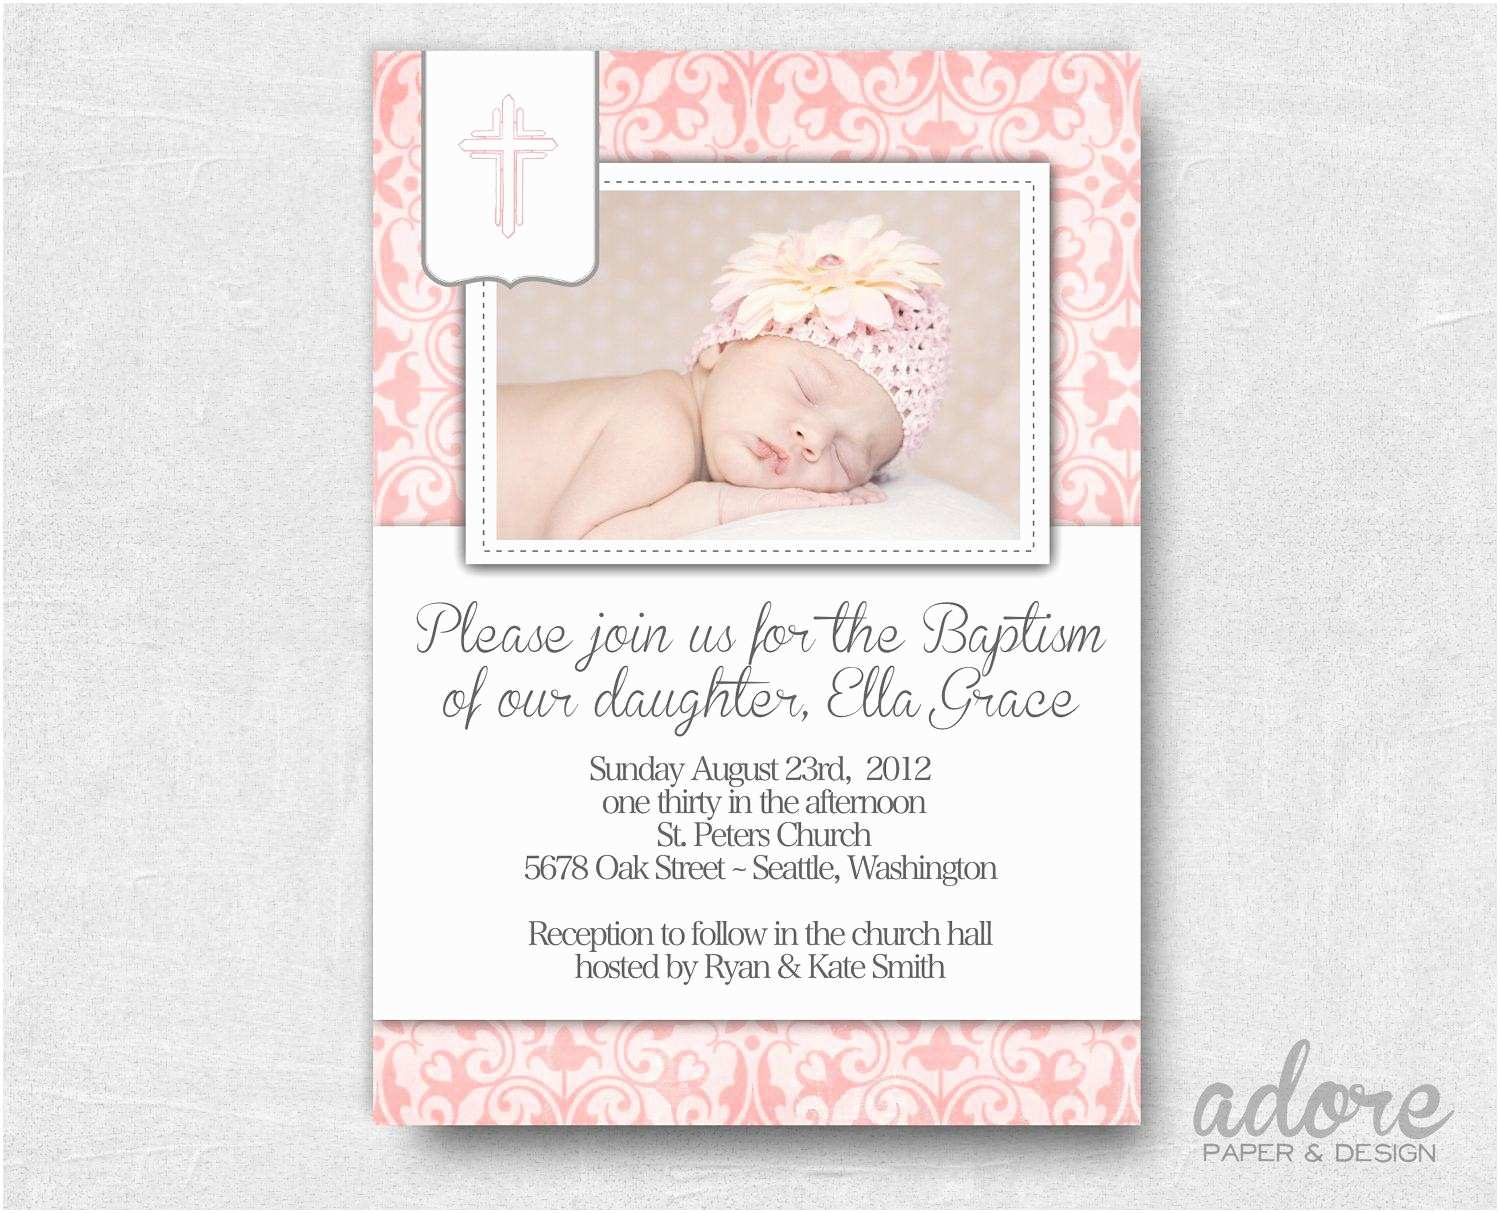 Baptism Invitations Templates Wording for Baptism Invitations Wording for Baptism